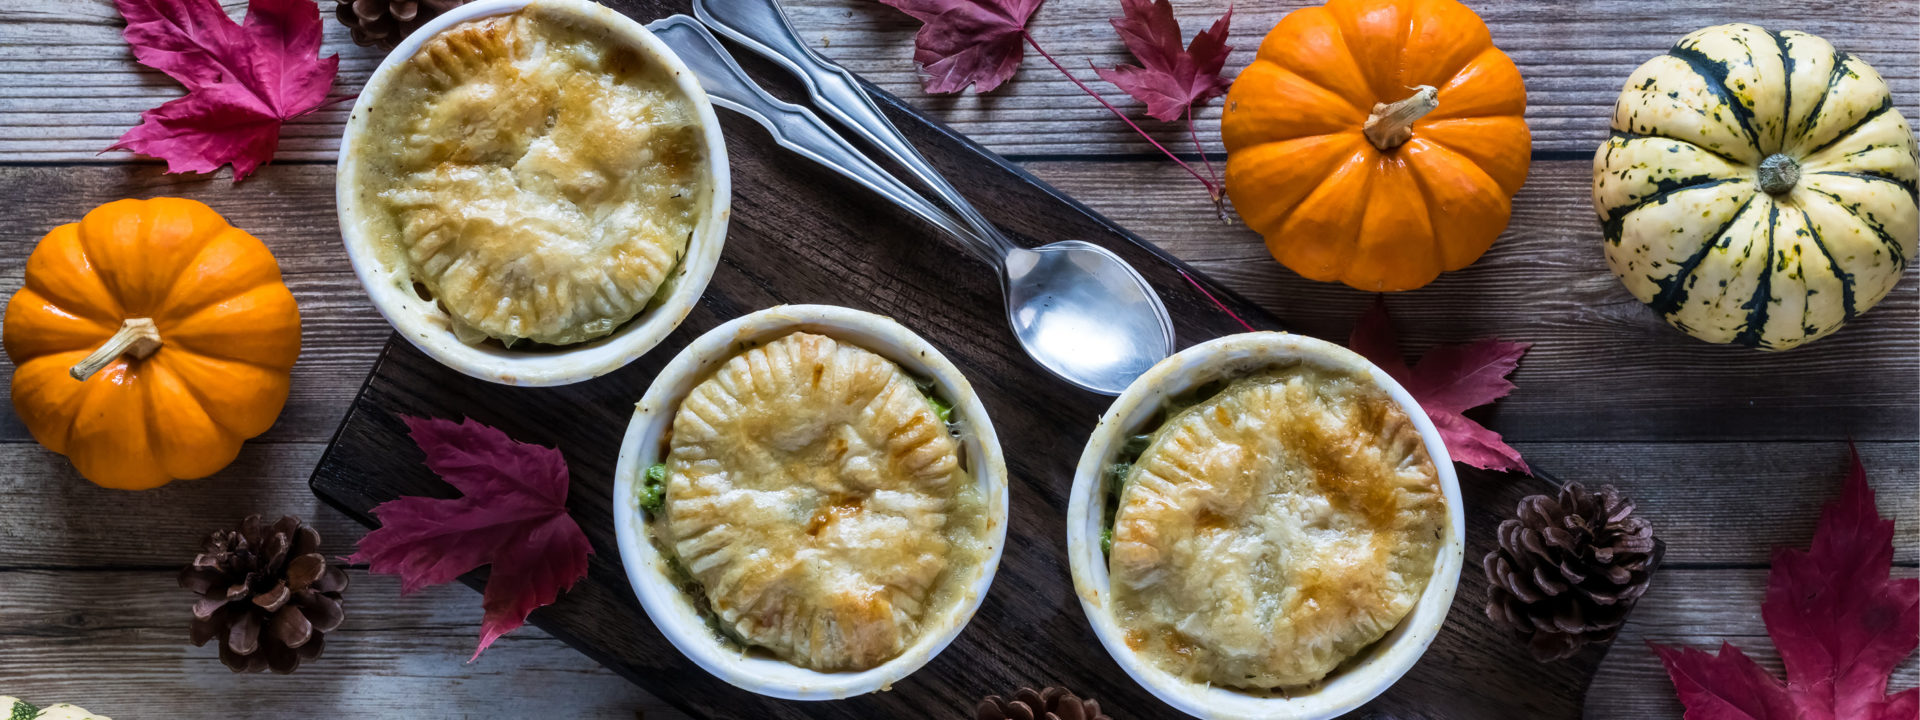 Three small turkey pot pies on a wooden plant serving board, seen from above with two spoons, pinecones, pumpkins and leaves around them